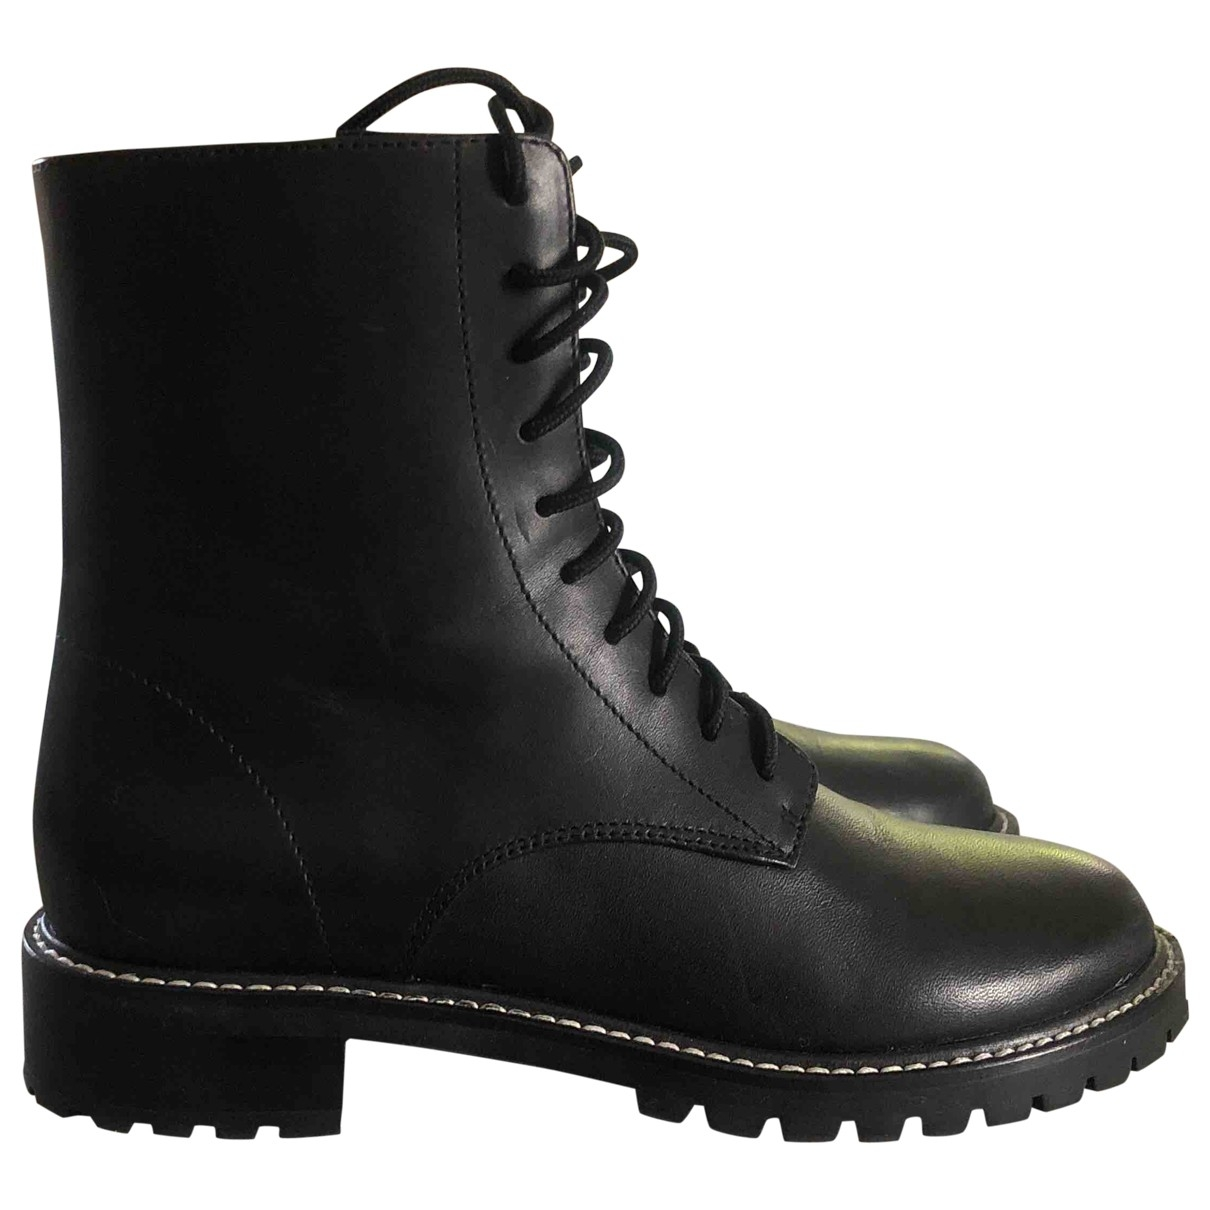 Reformation \N Black Leather Boots for Women 6 US